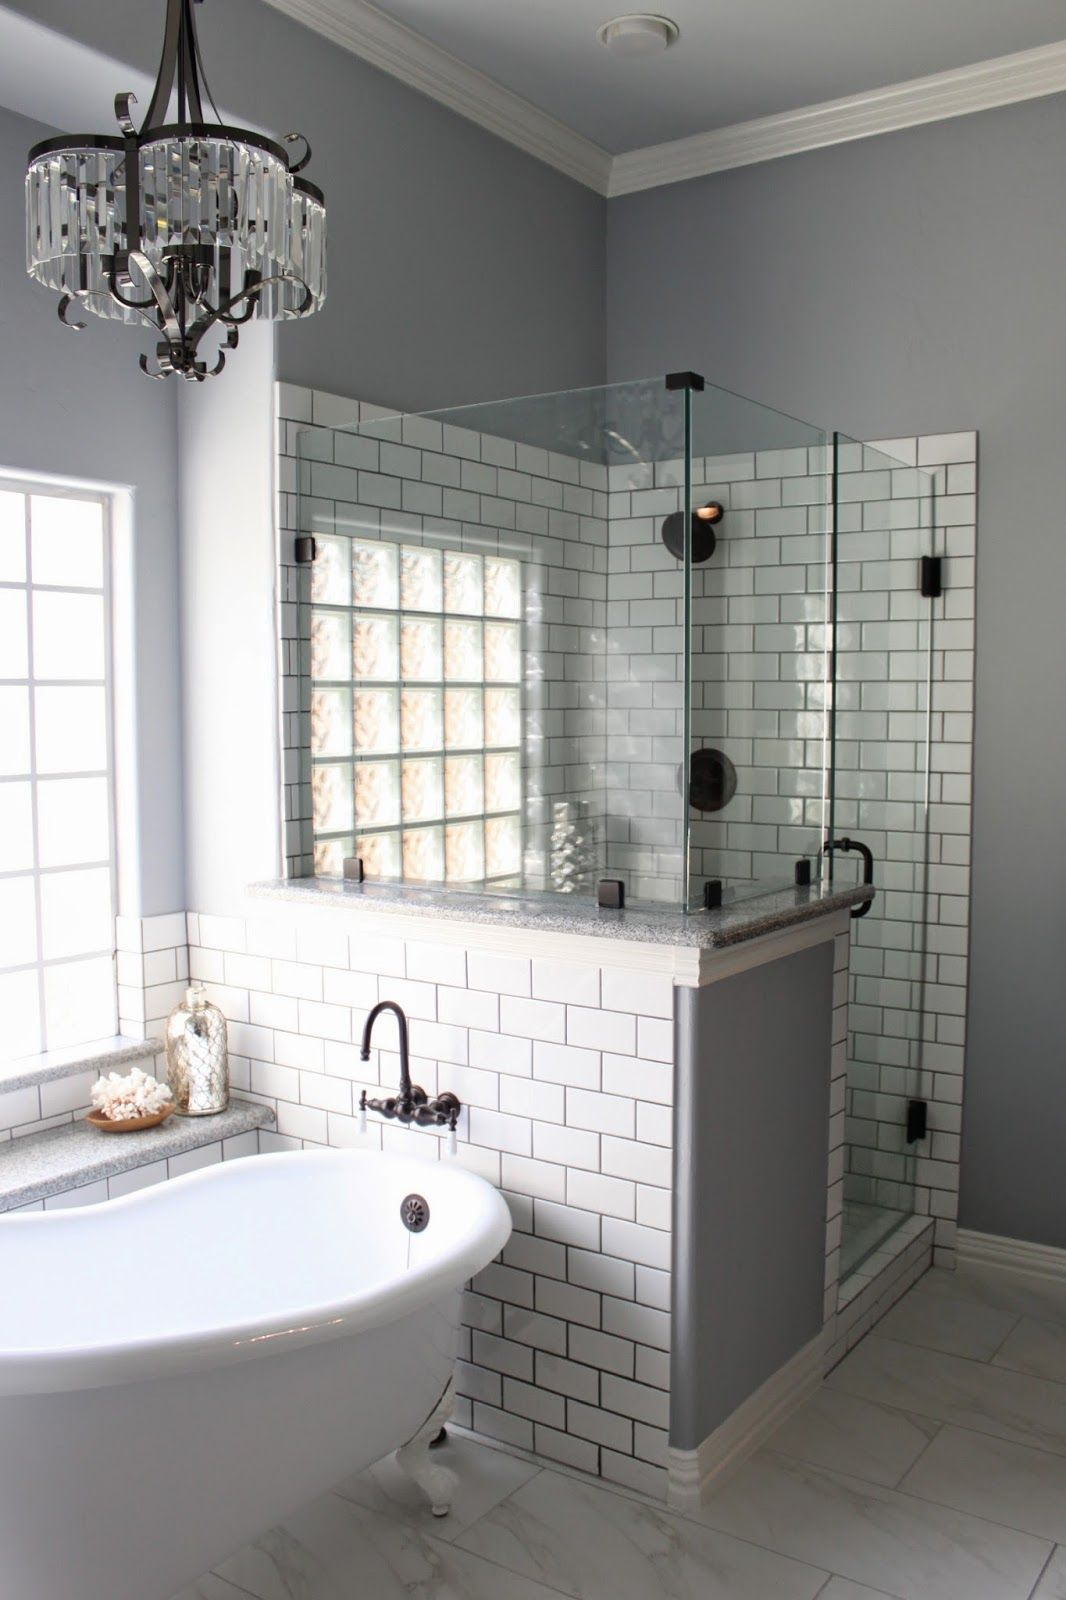 Master Bath Remodel | Pinterest | Grey grout, White subway tiles and ...